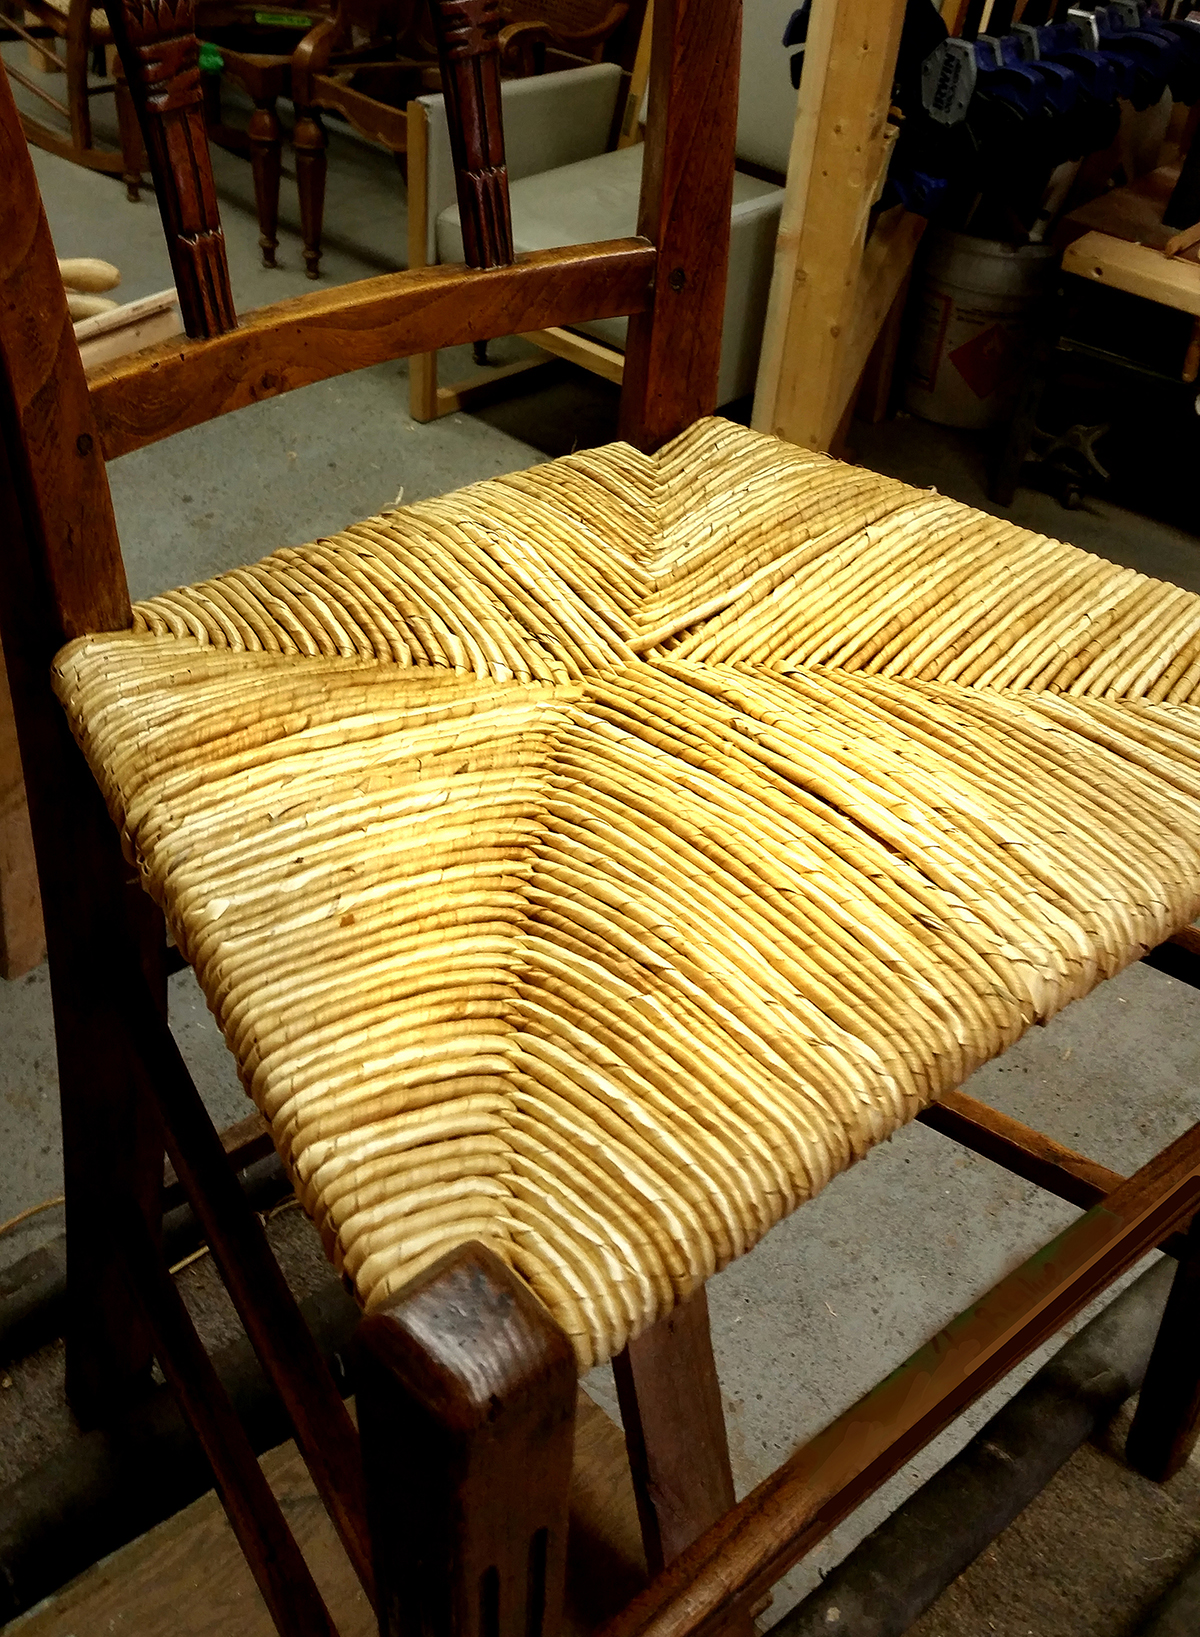 Wheat wrap rush is a premium material that we offer. It is the traditional material originally used since the early 16th century. It finishes the chair off with a beautiful golden glow.